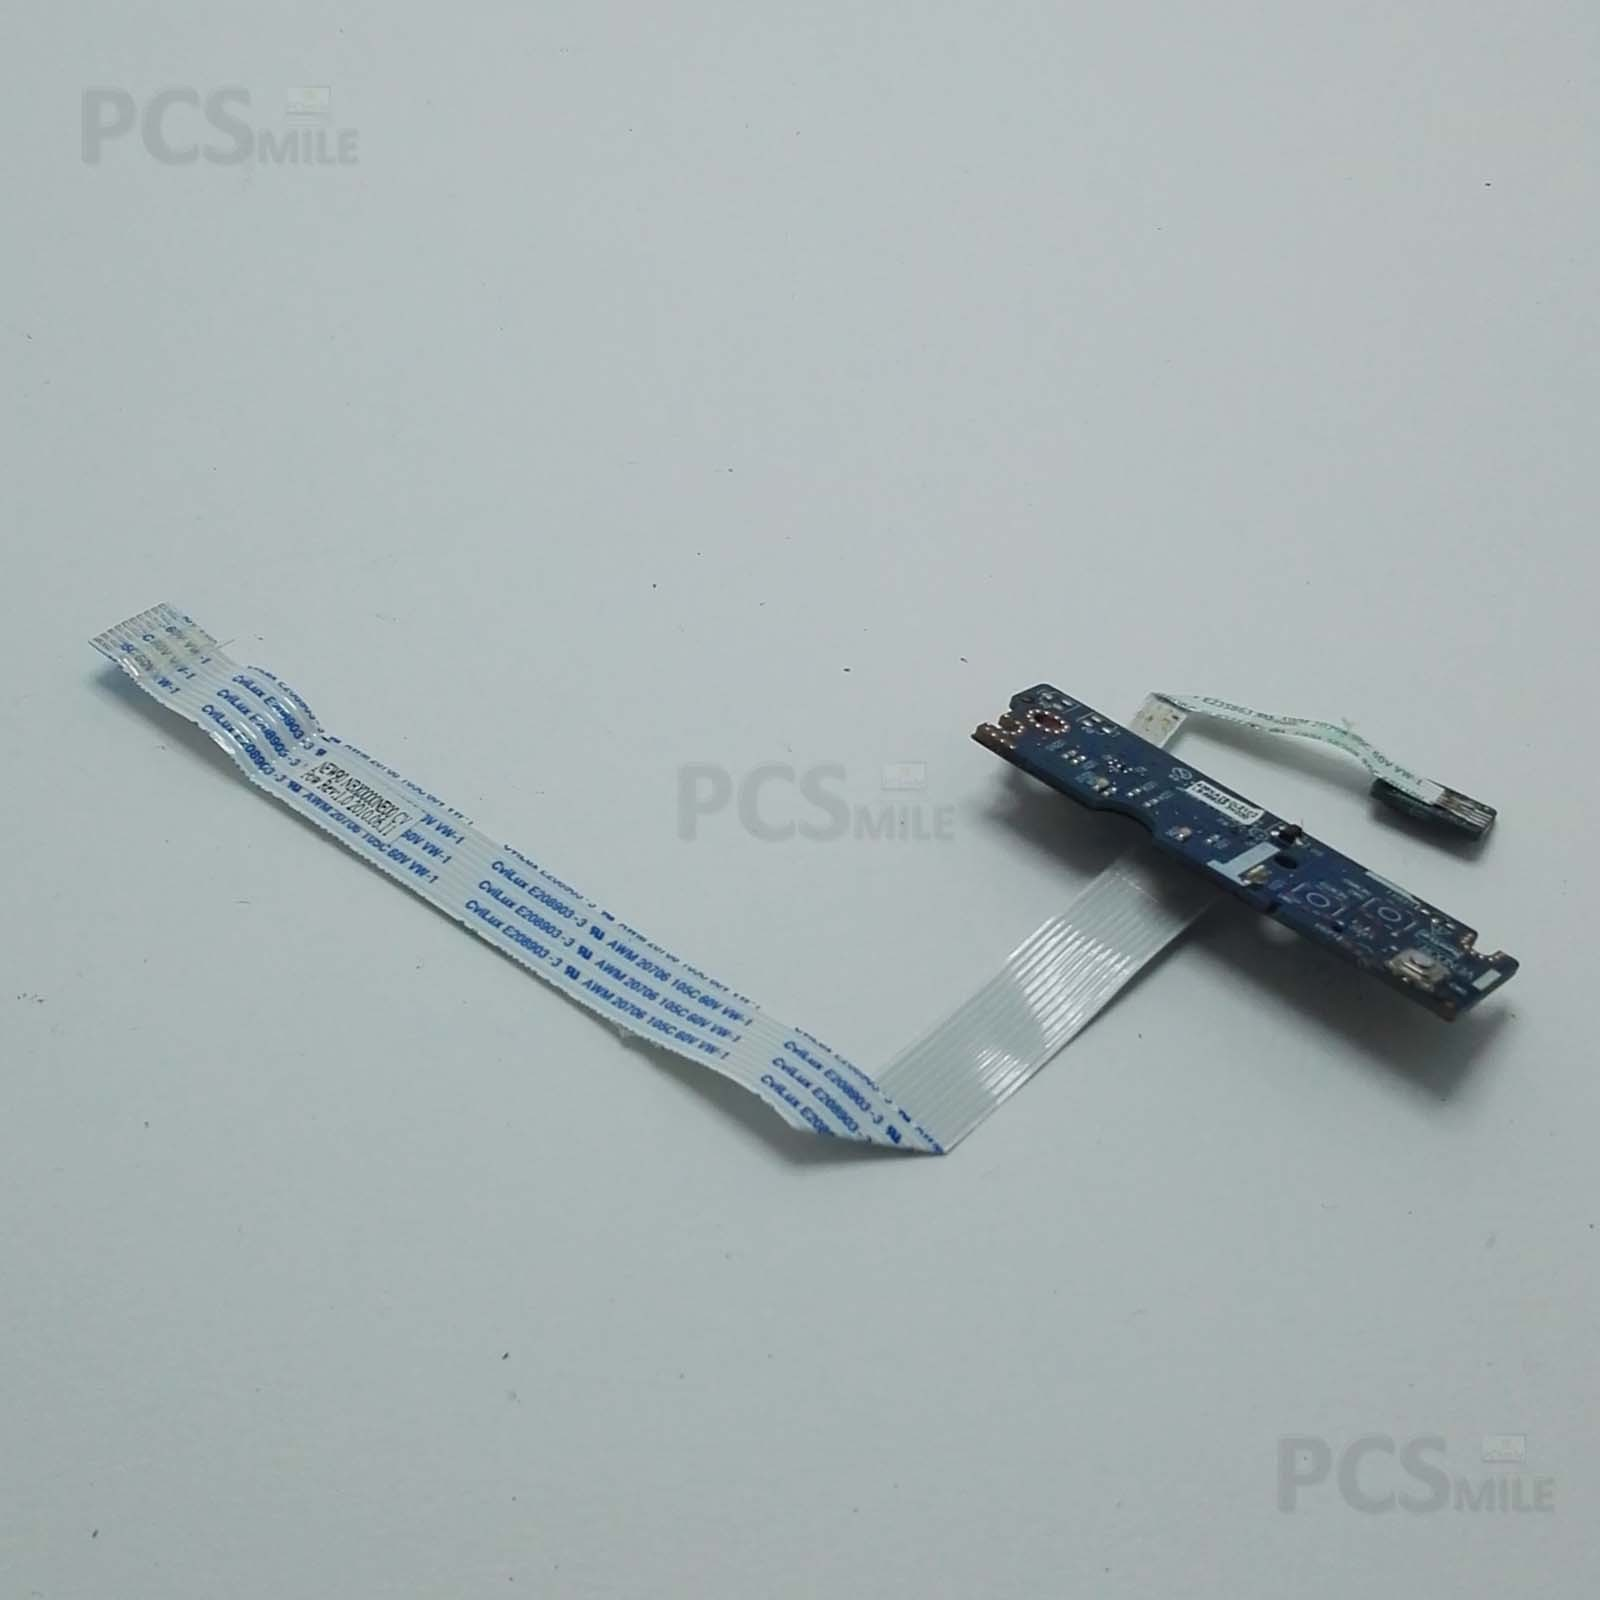 Tasto accensione Packard bell EasyNote TM85 Power button LS-5893P Acer Emachine